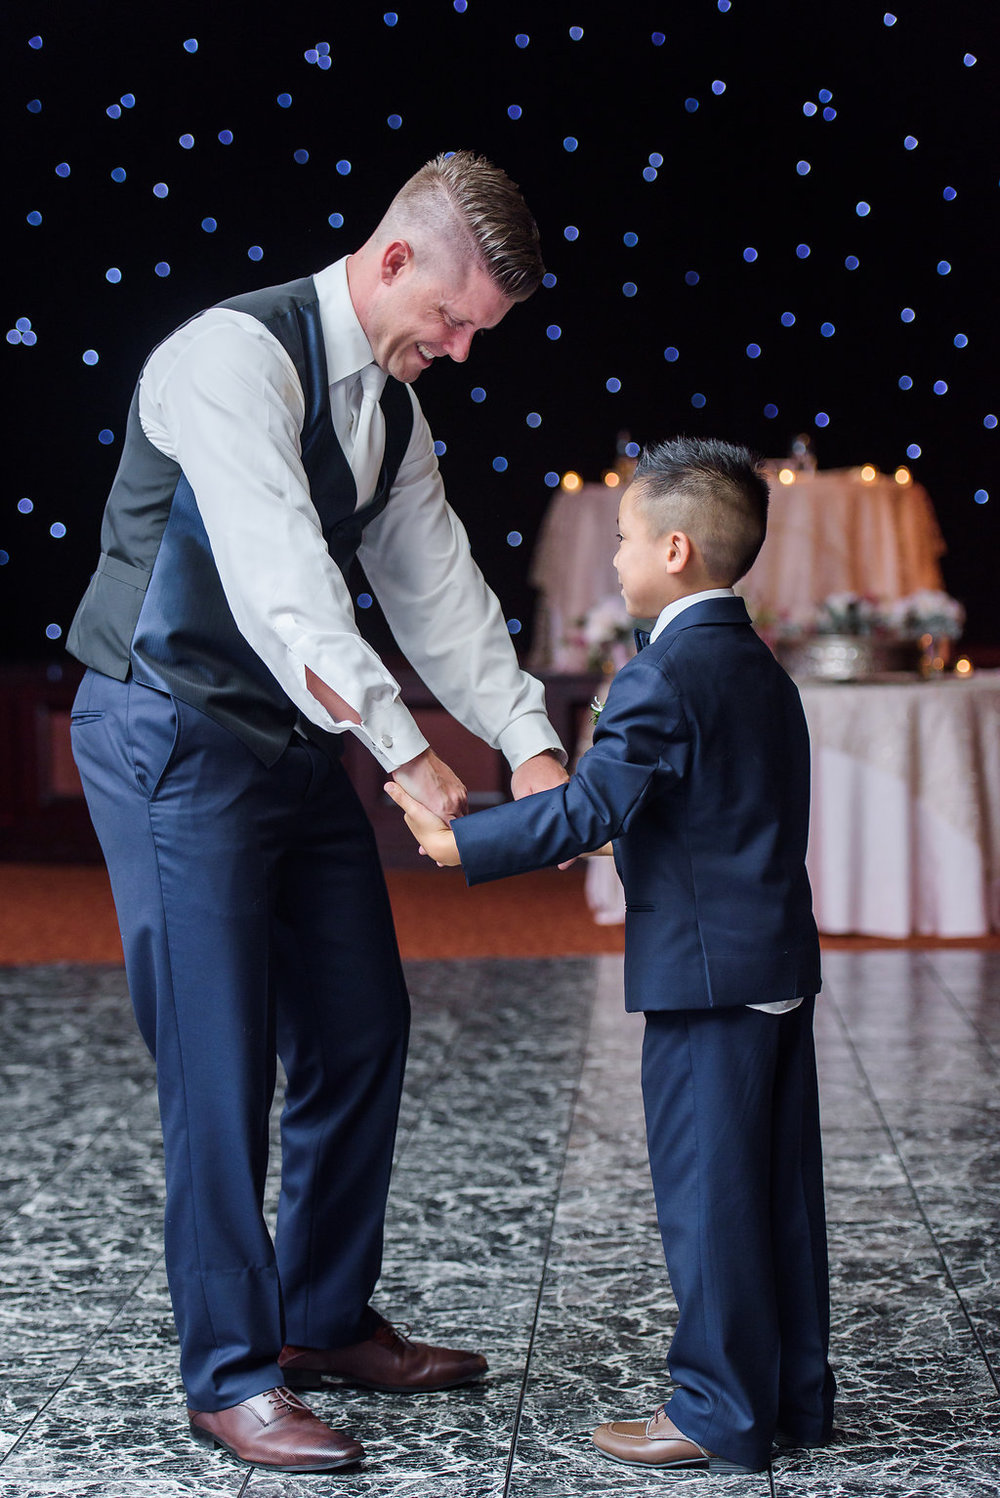 One of the sweetest moments was when the bride's son and ringbearer requested a special song from the DJ and asked his new Dad, Eric, to have a special dance with him - there wasn't a dry eye in the house!